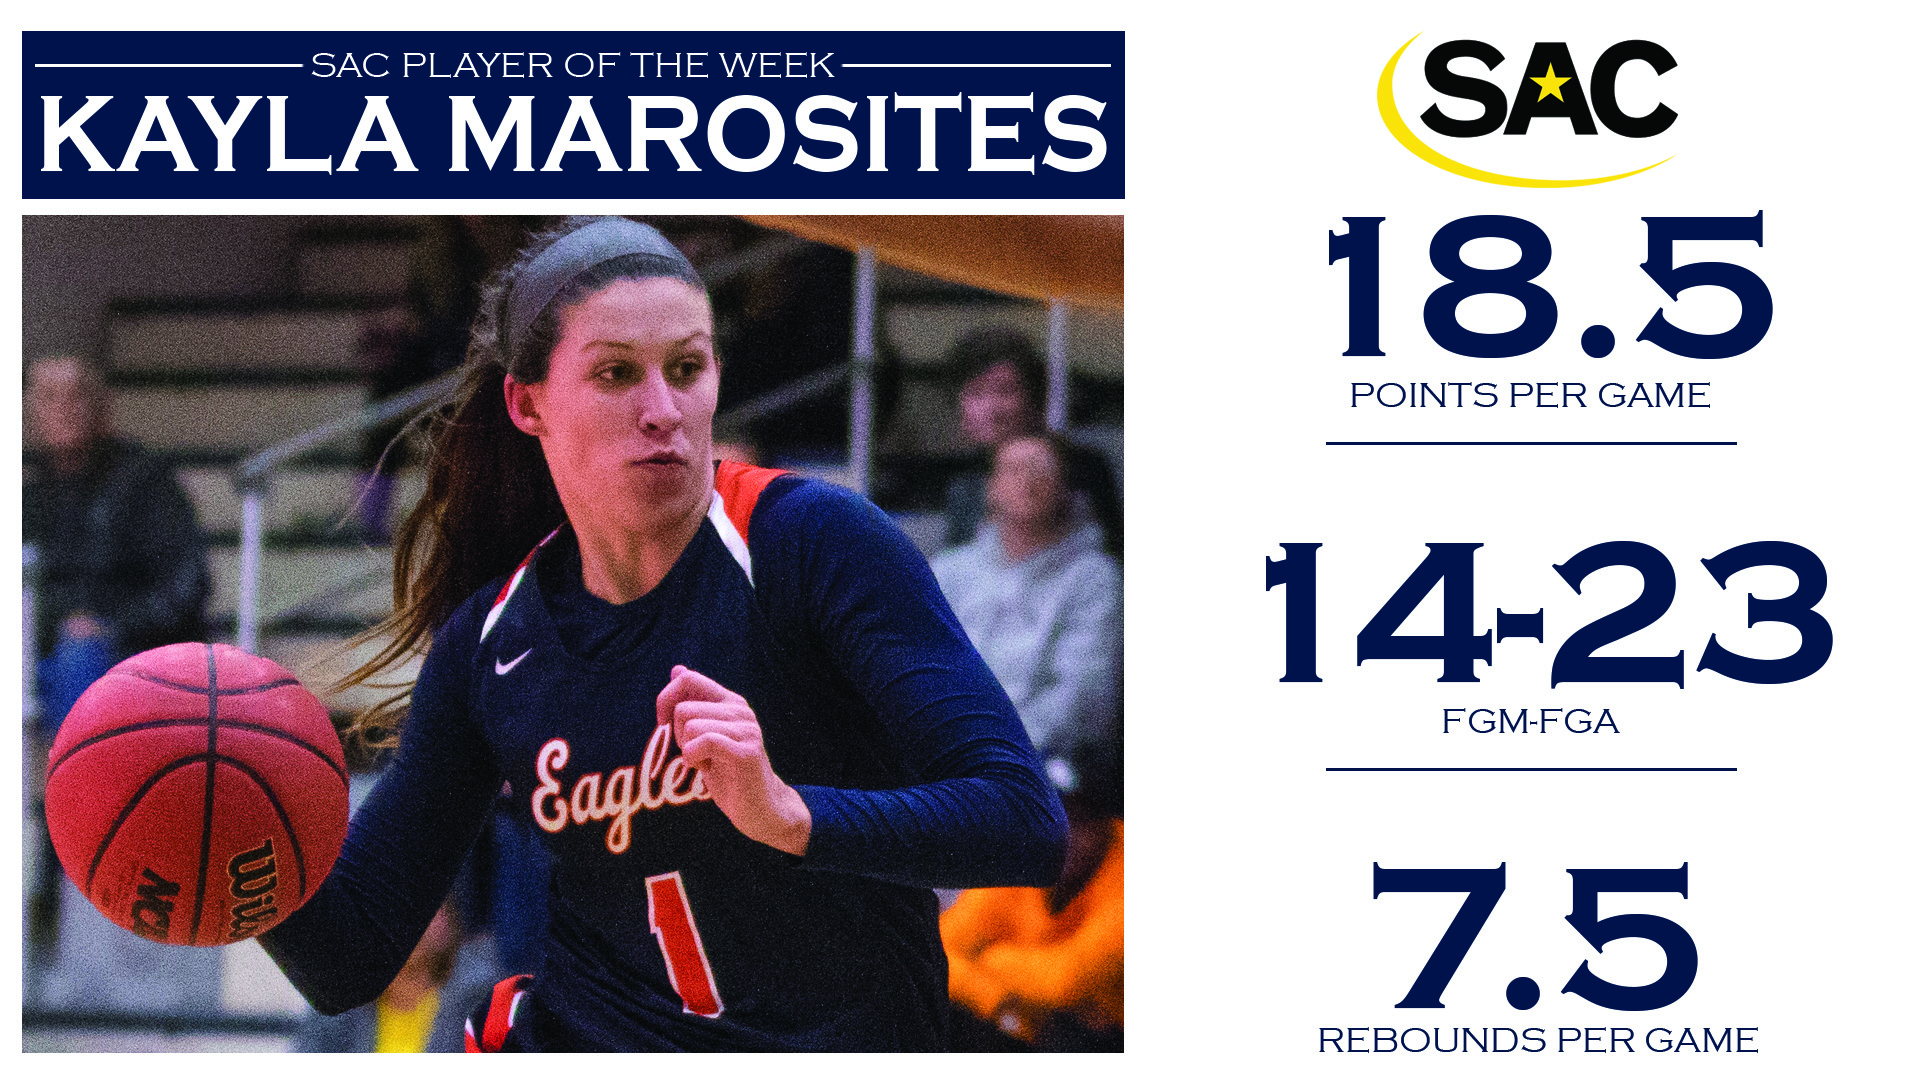 Marosites reels in first-career SAC Player of the Week honor